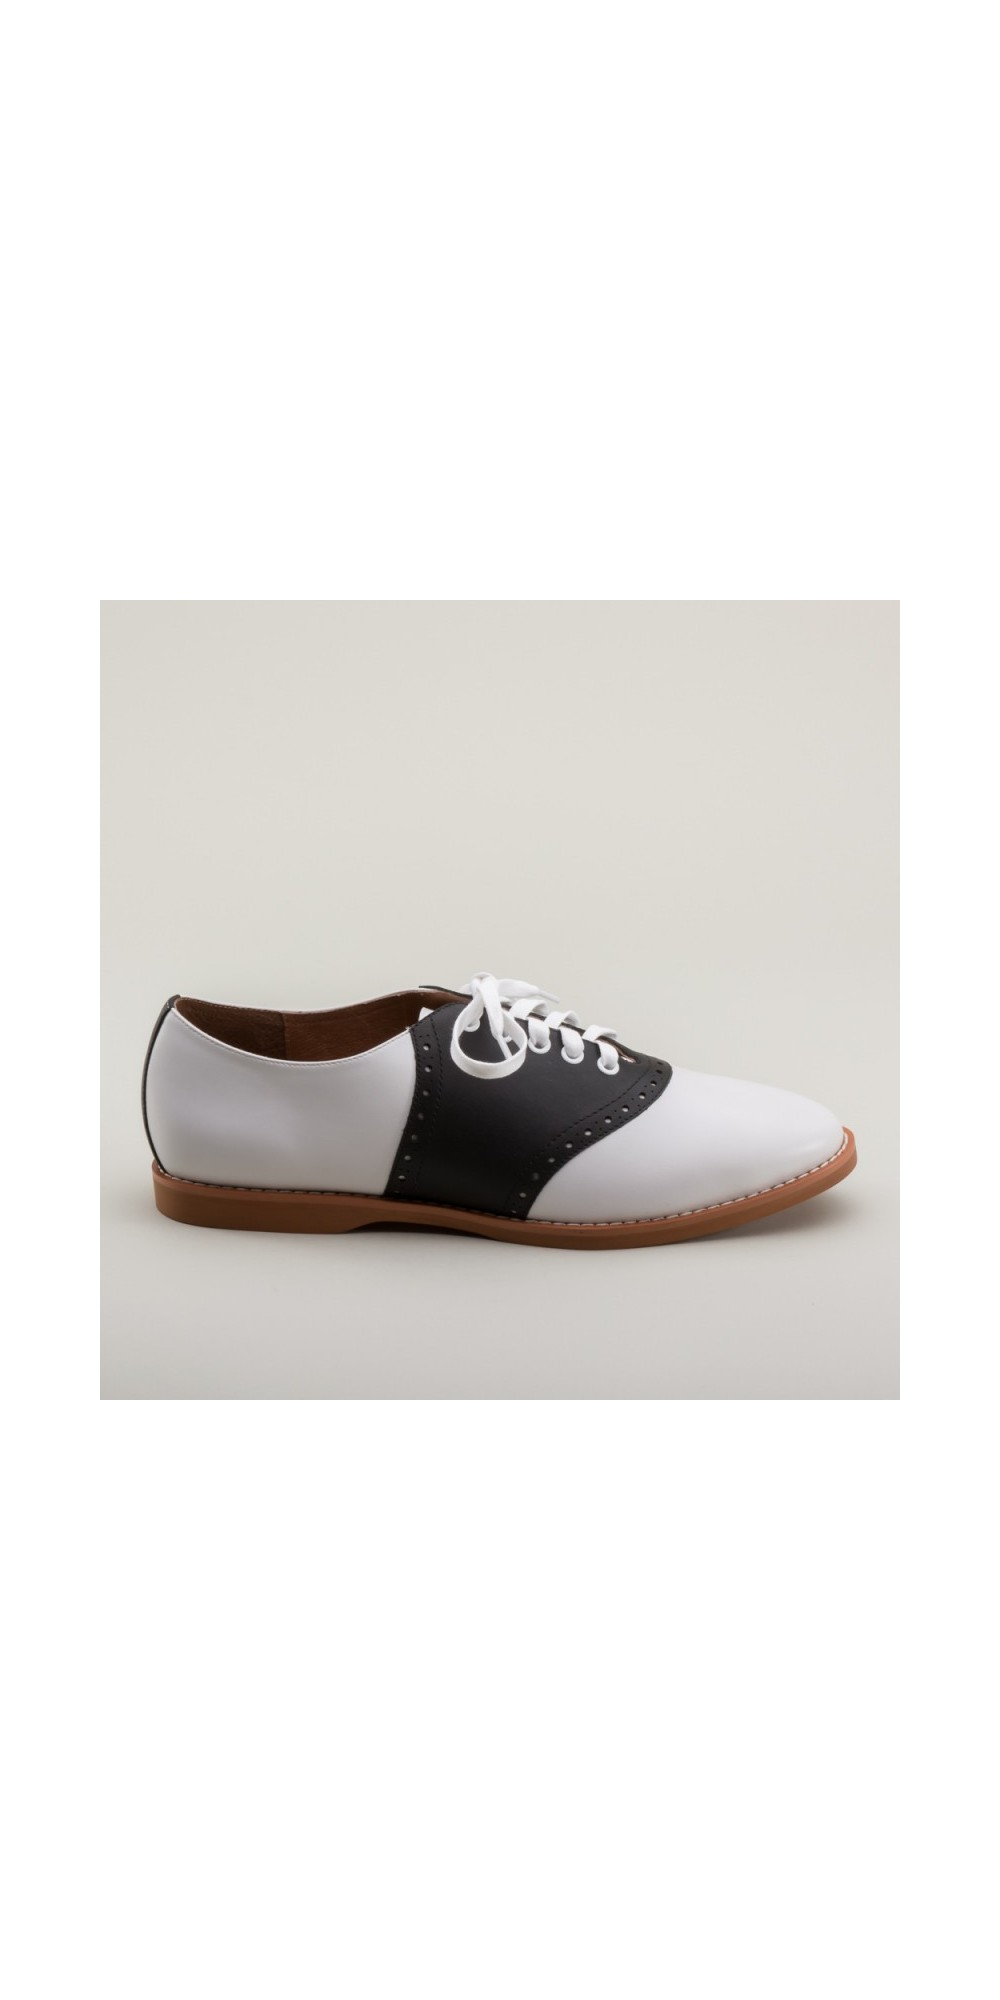 8e78d699b5dc3c Susie Classic Saddle Shoes in Black White by Royal Vintage Shoes